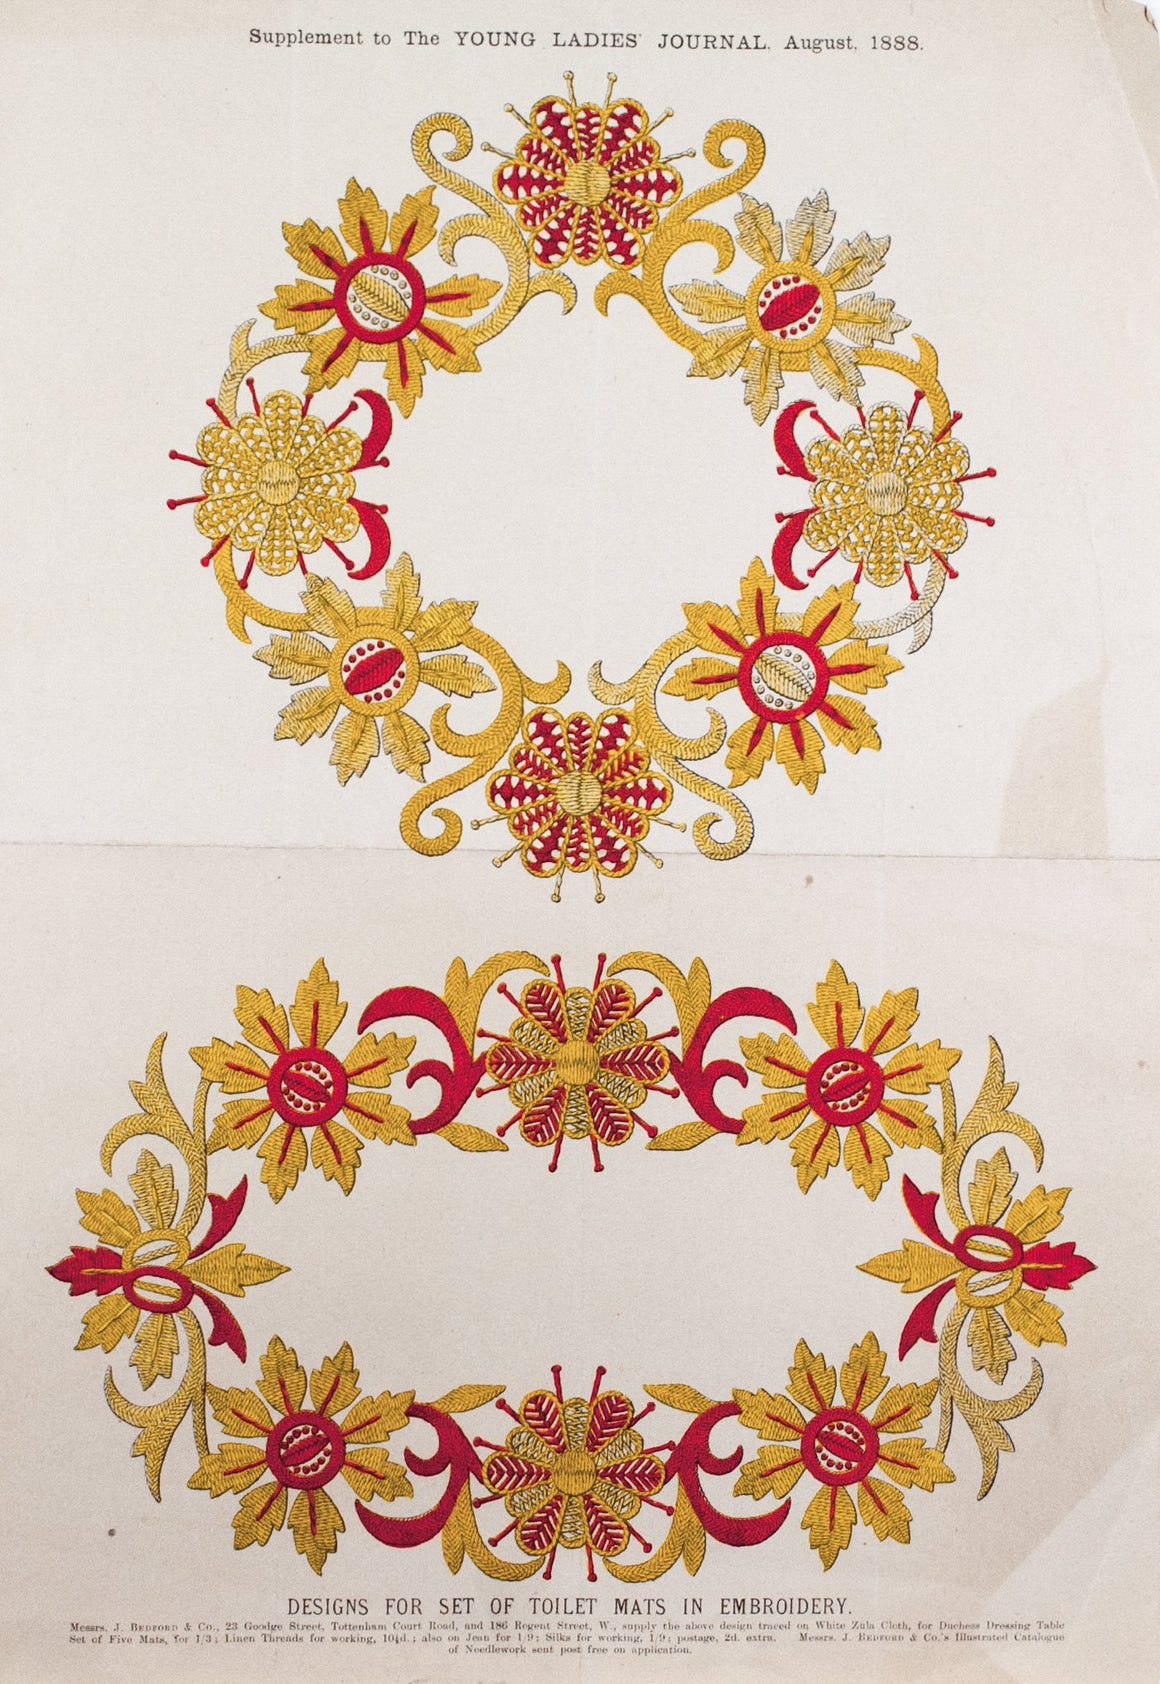 1888 Design for set of Toilet Mats in Embroidery - Messrs J. Bedford & Co